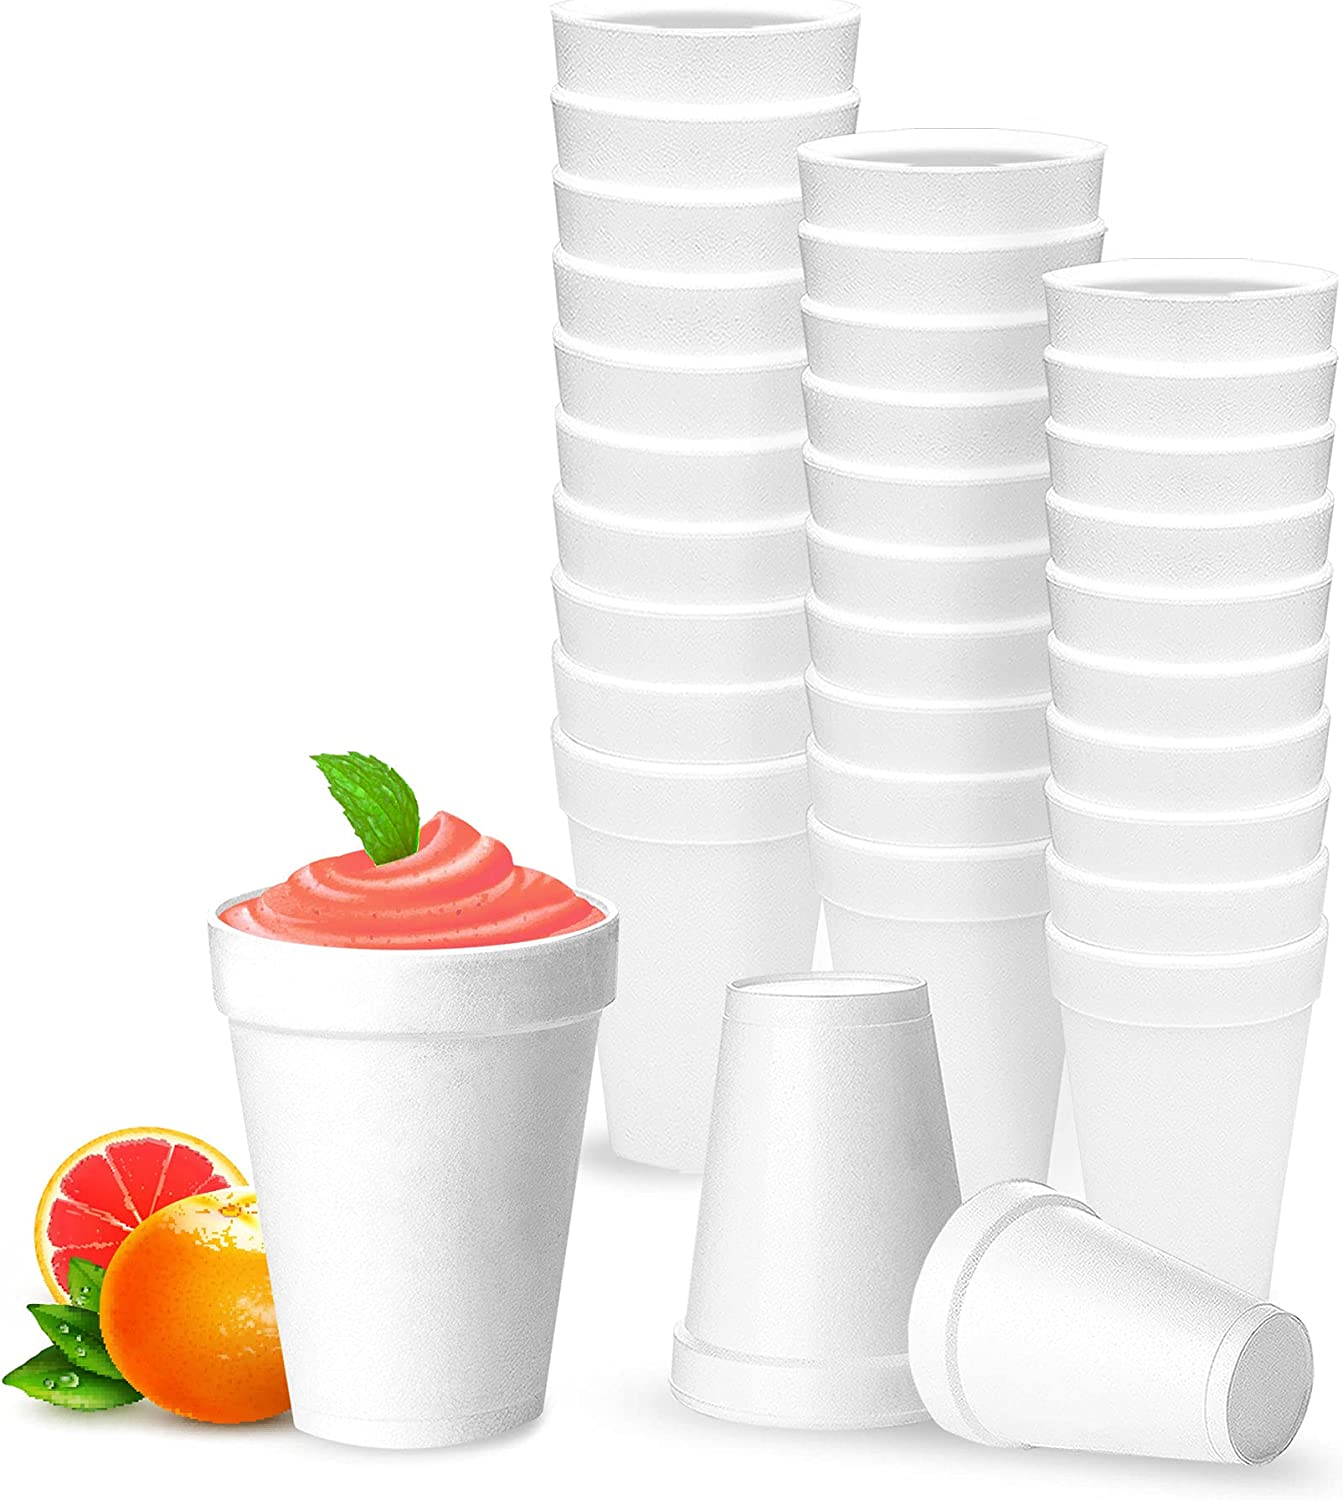 12 Oz Disposable Styrofoam Cups (25 Pack), White Foam Cup Insulates Hot & Cold Beverages, Made in the USA, To-Go Cups - for Coffee, Tea, Hot Cocoa, Soup, Broth, Smoothie, Soda, Juice